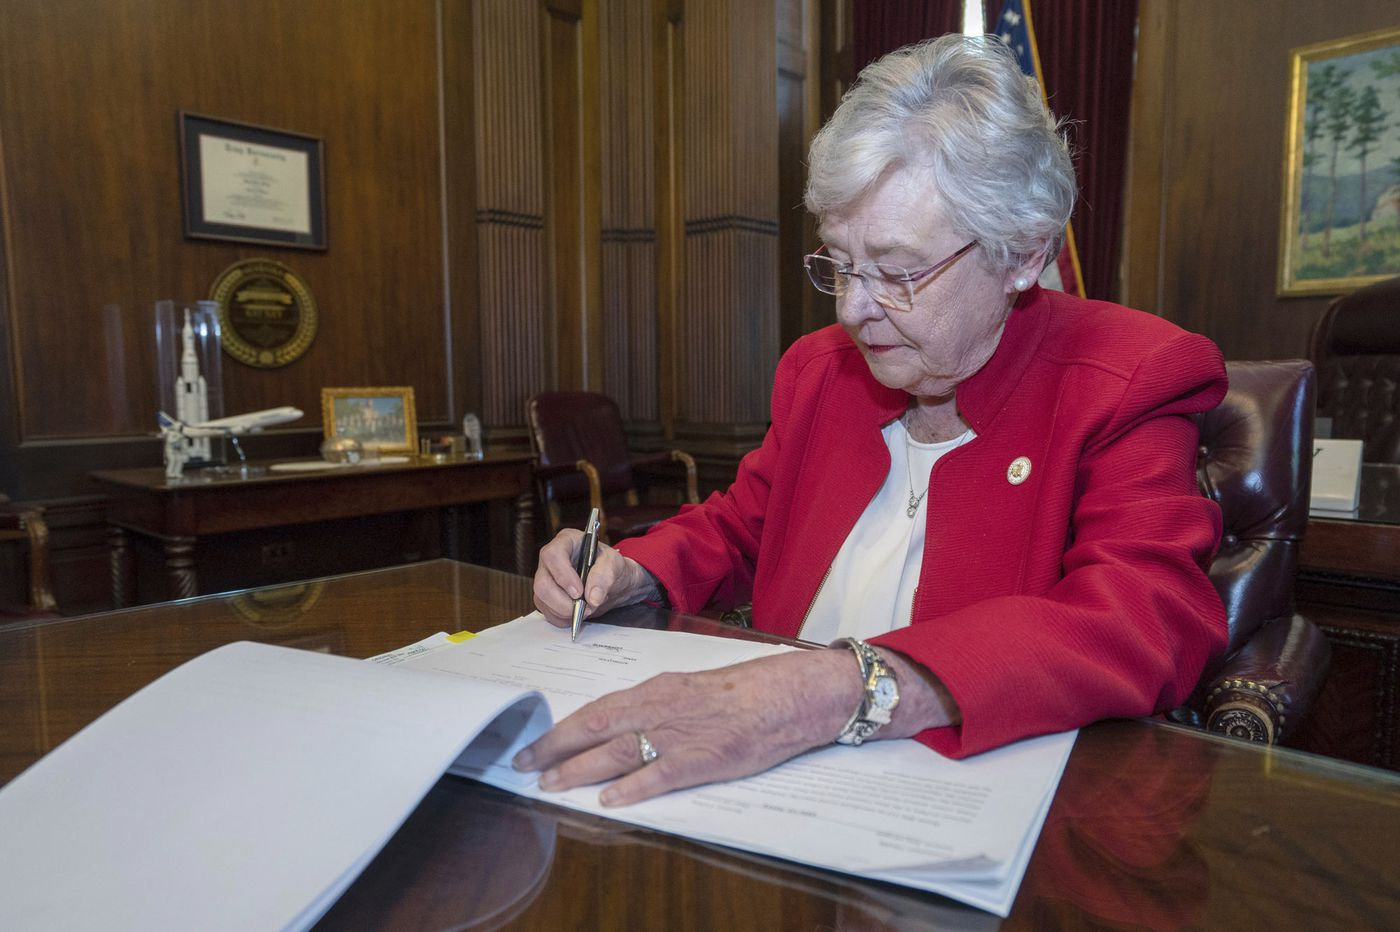 Alabama abortion law: What's happened and what's next